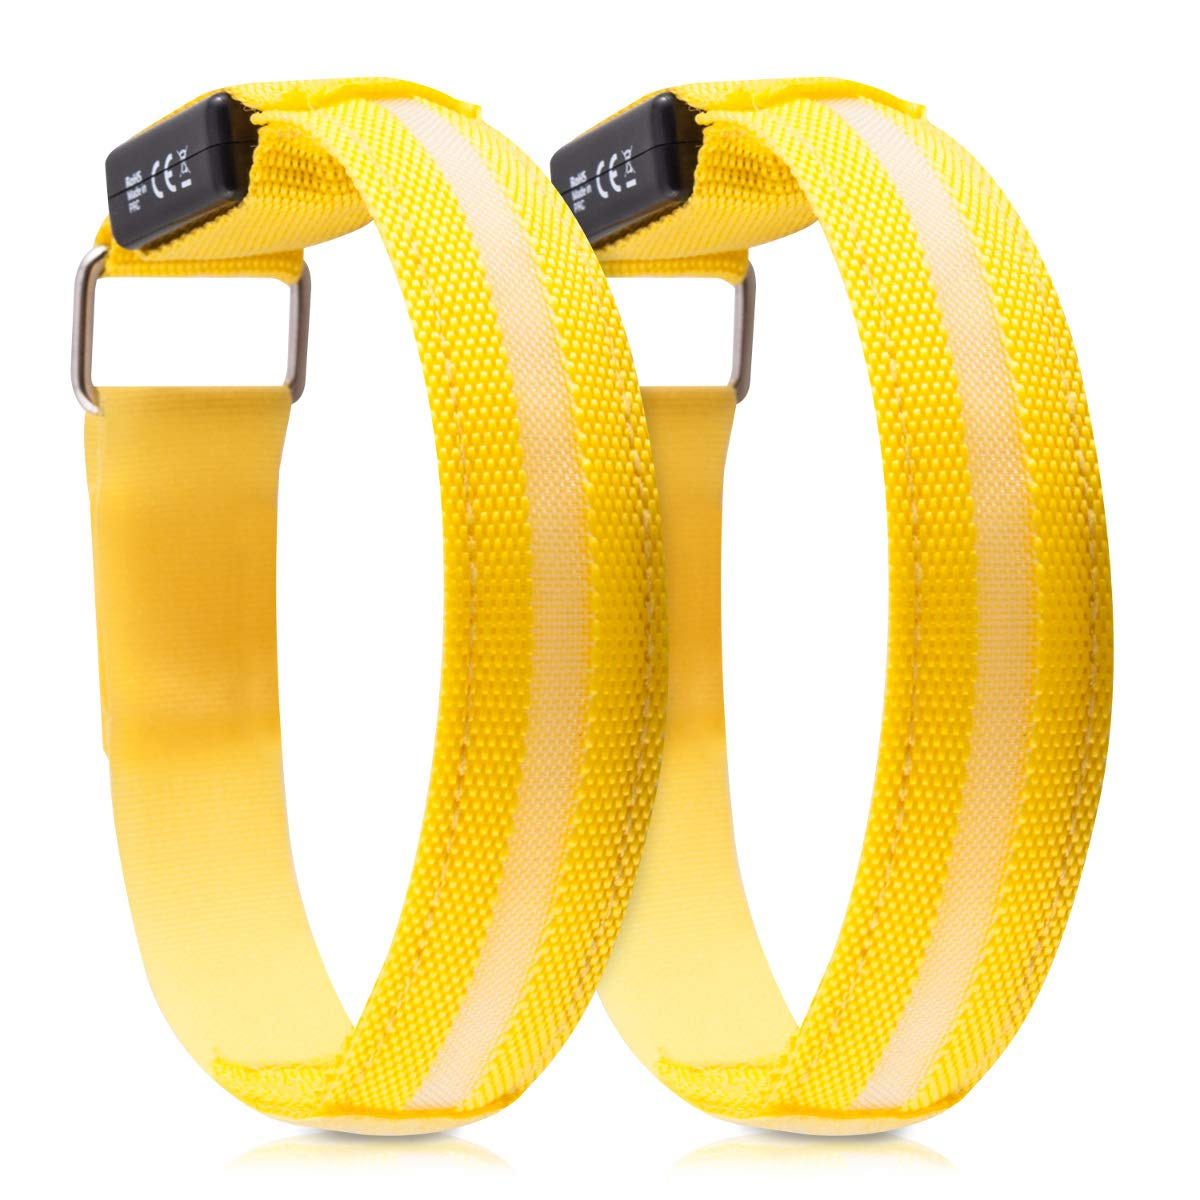 Outdoor Sports Bands for Jogging Cycling Walking Glow in the Dark Safety Bracelet for Arm kwmobile 2x LED Light Armband Ankle Leg